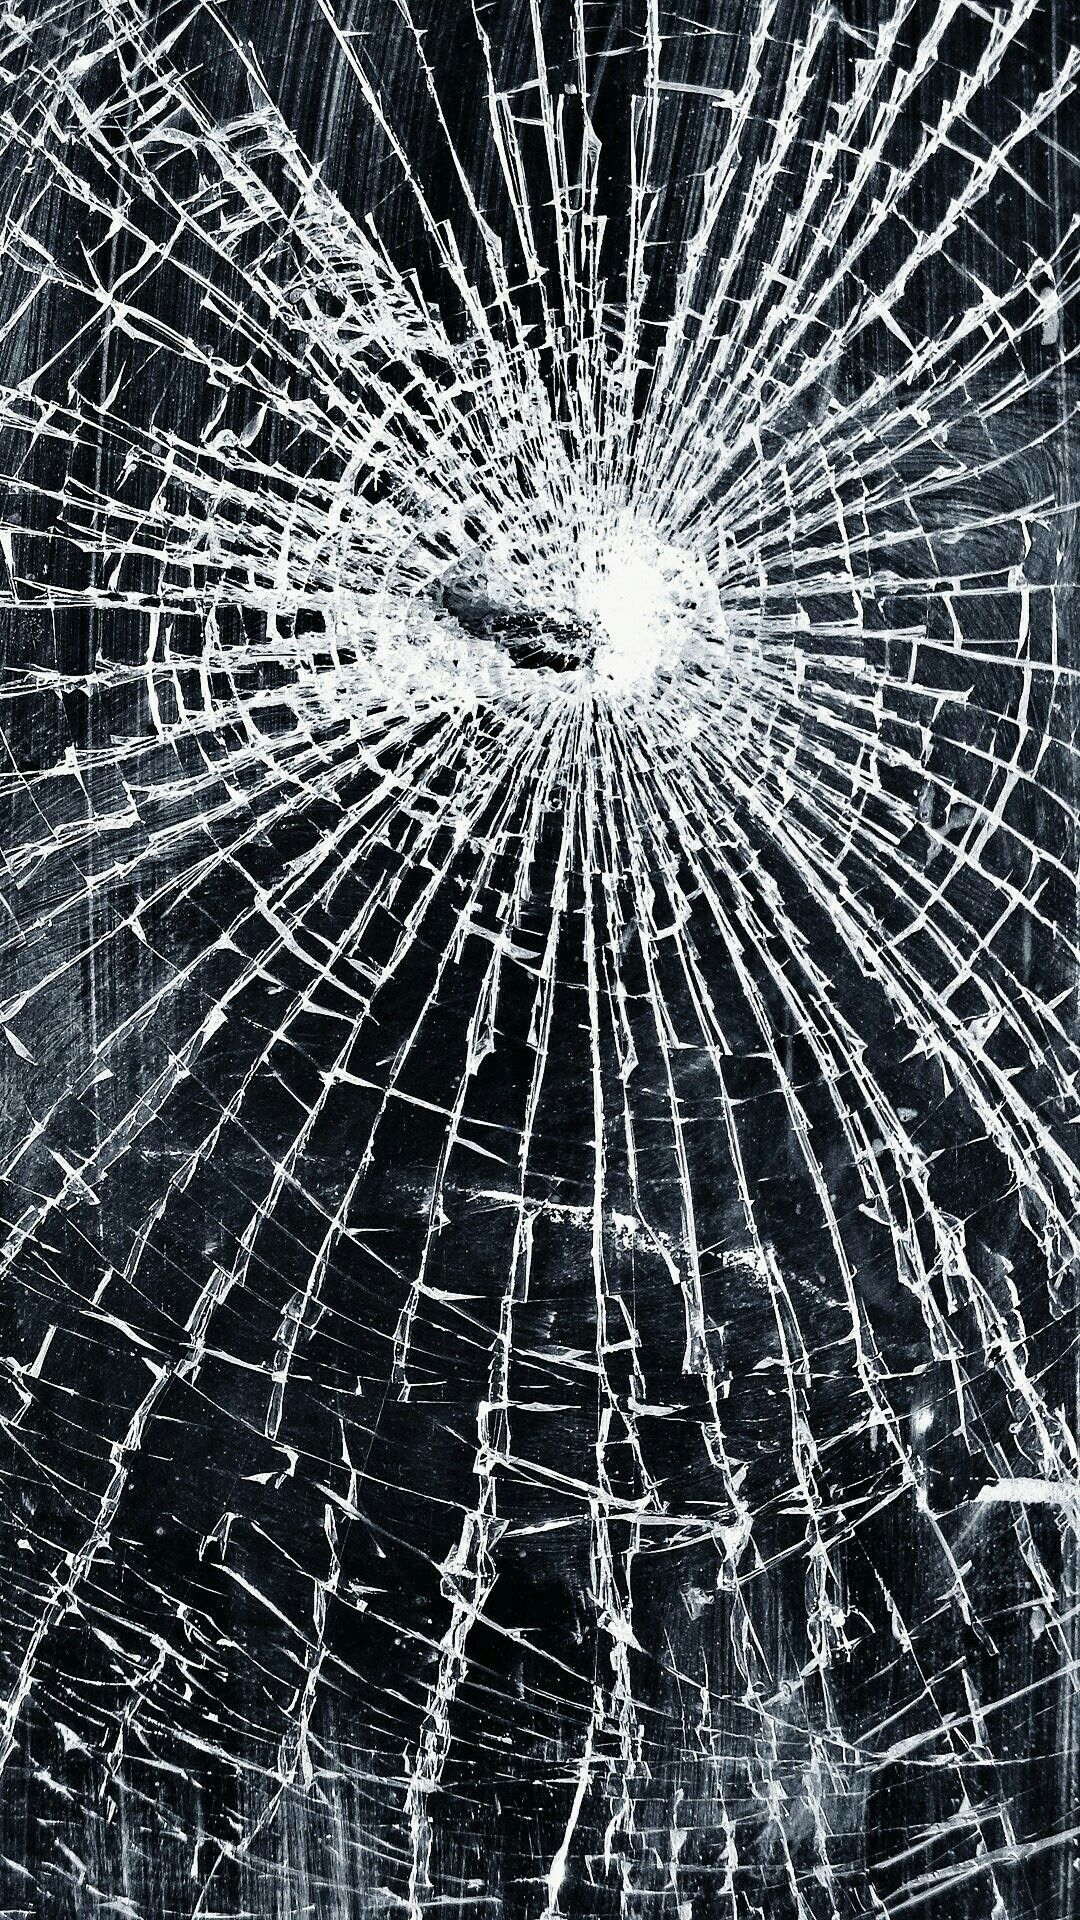 Iphone cracked screen wallpapers top free iphone cracked - Mobile screen crack wallpaper ...